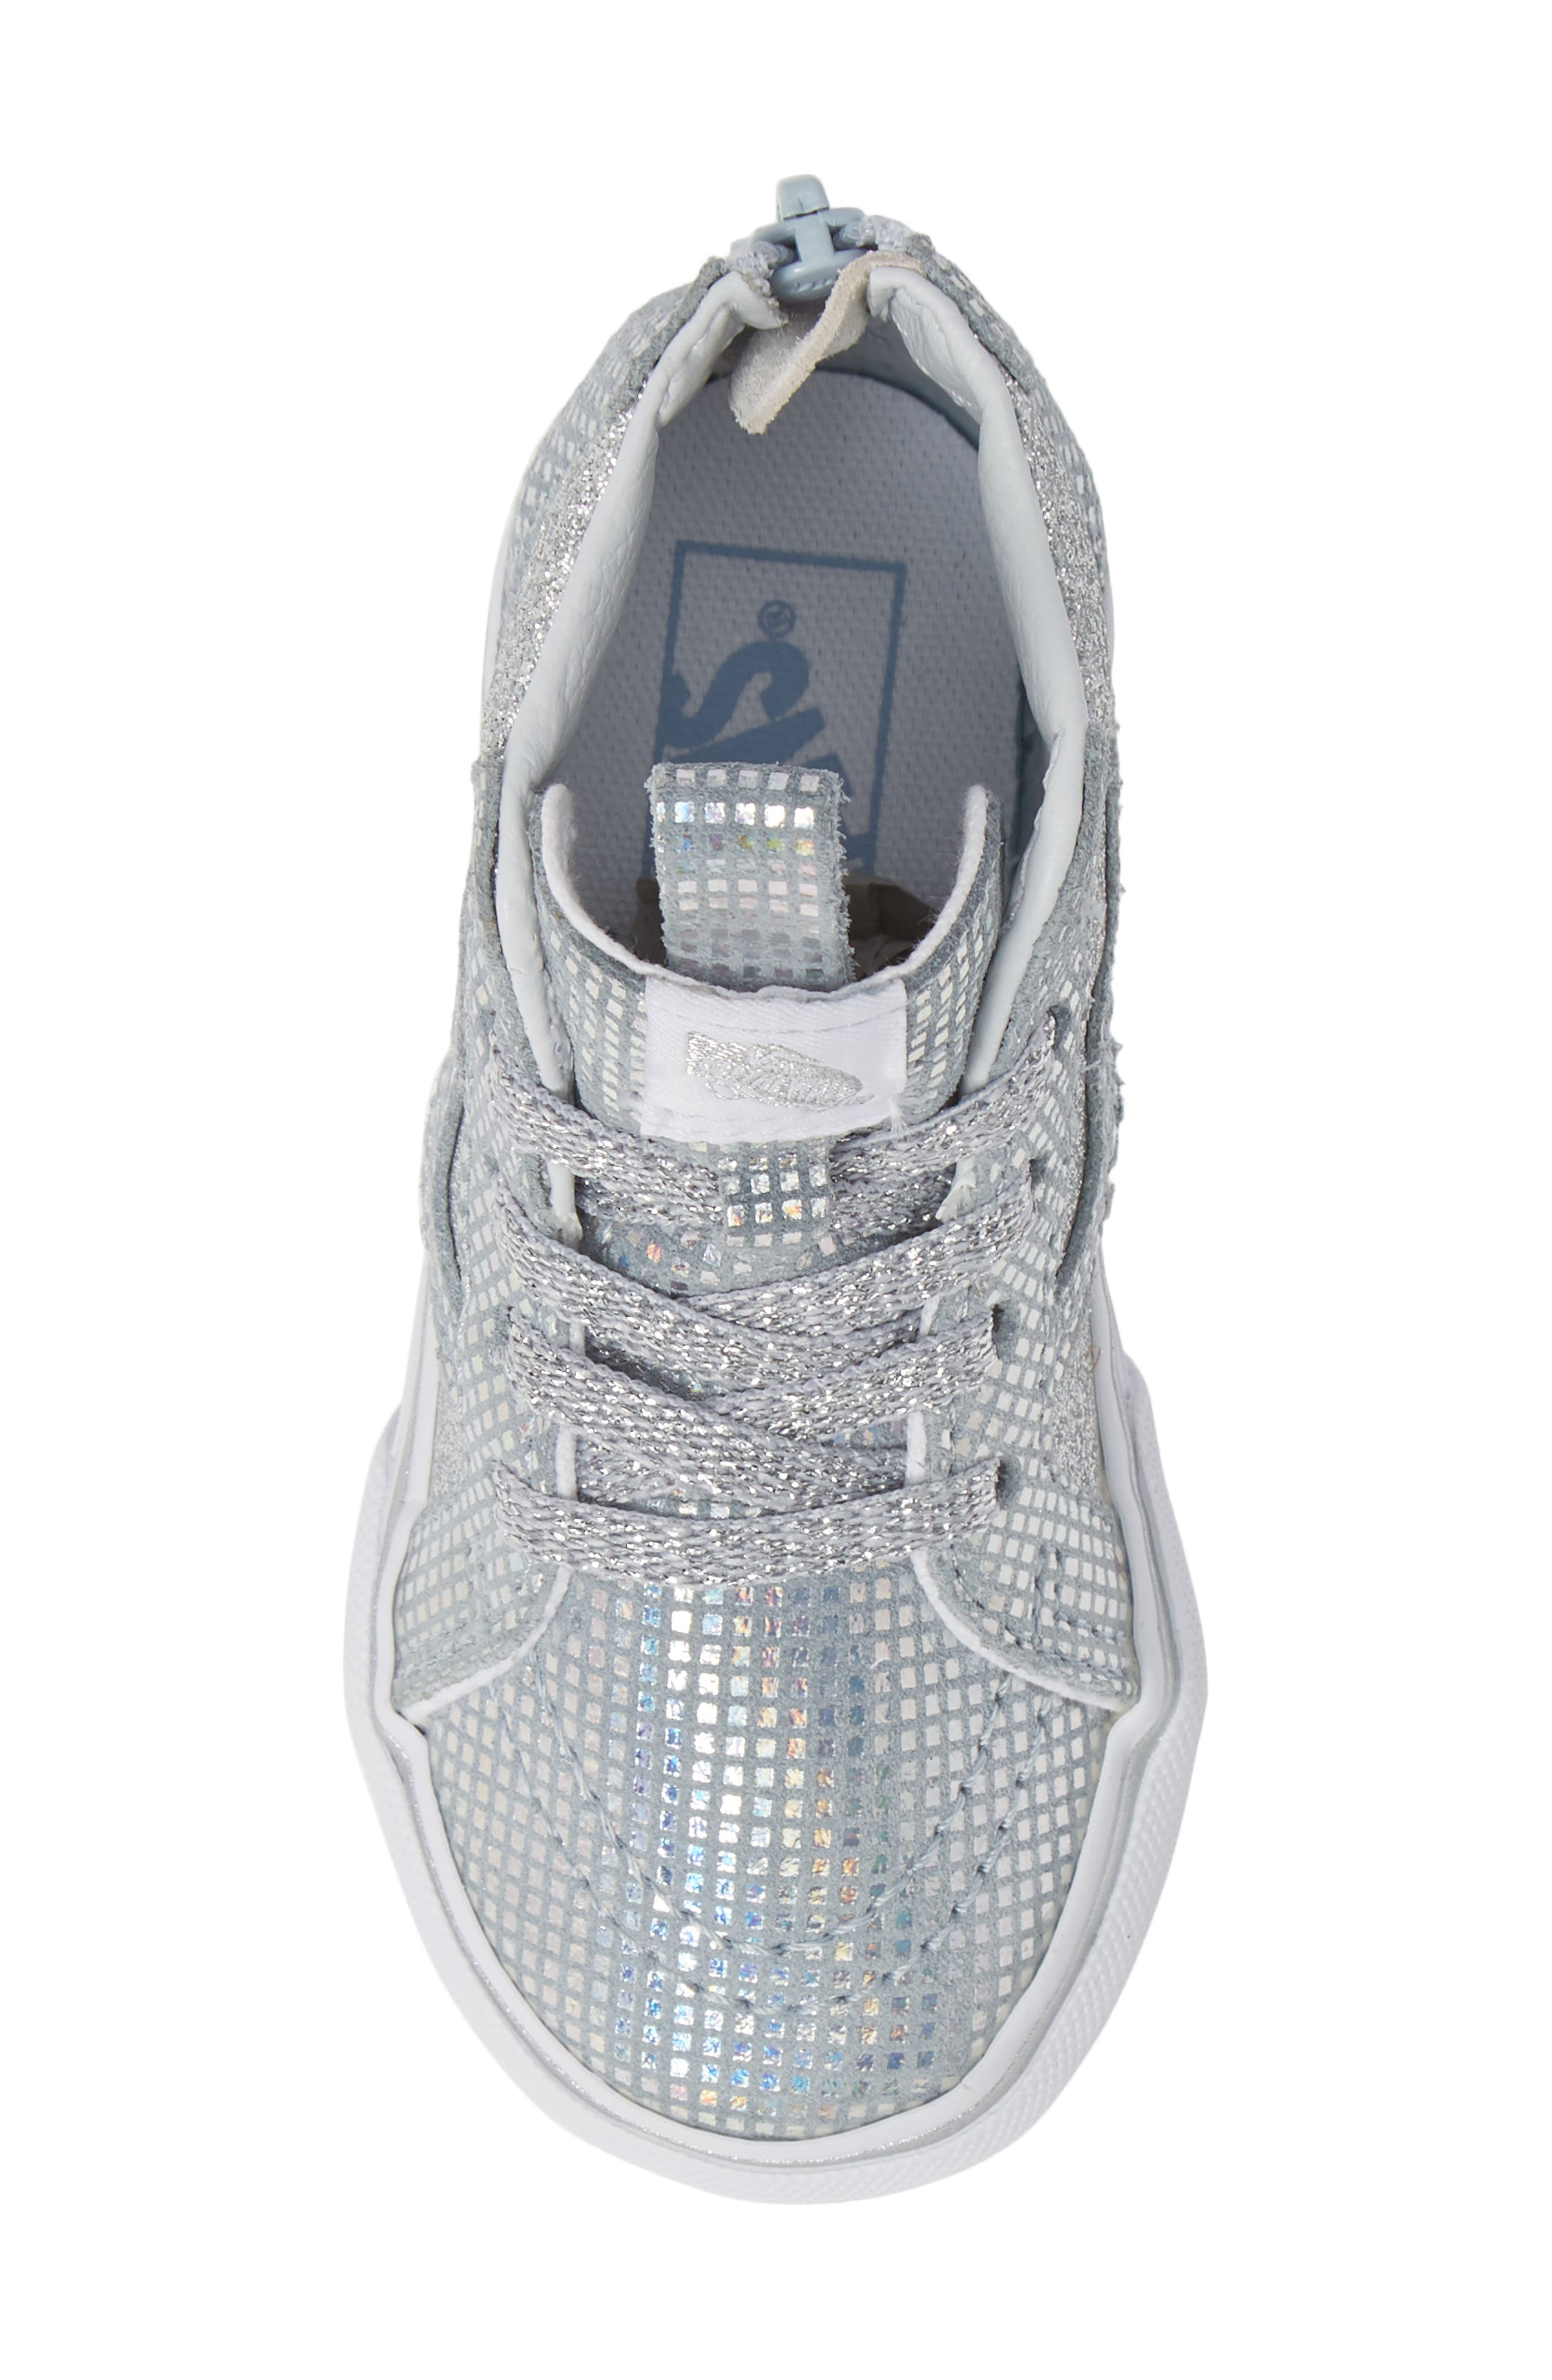 SK8-Hi Zip Sparkle Sneaker,                             Alternate thumbnail 5, color,                             METALLIC SILVER GLITTER